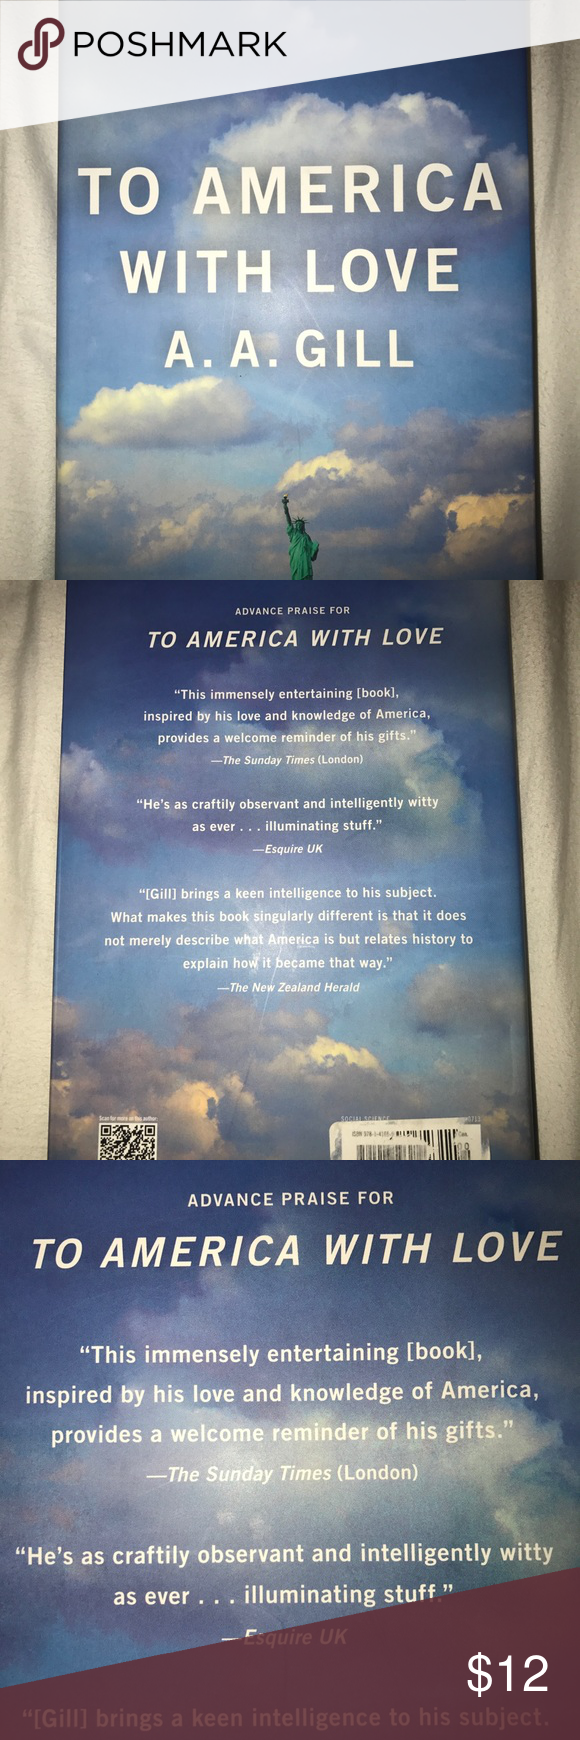 "To America with Love by A. A. Gill BOOK To America with Love by A. A. Gill  ""A celebrated British provocateur and Vanity Fair columnist serves up an ""immensely entertaining book inspired by his love and knowledge of America"" (Sunday Times, London). Books Other"